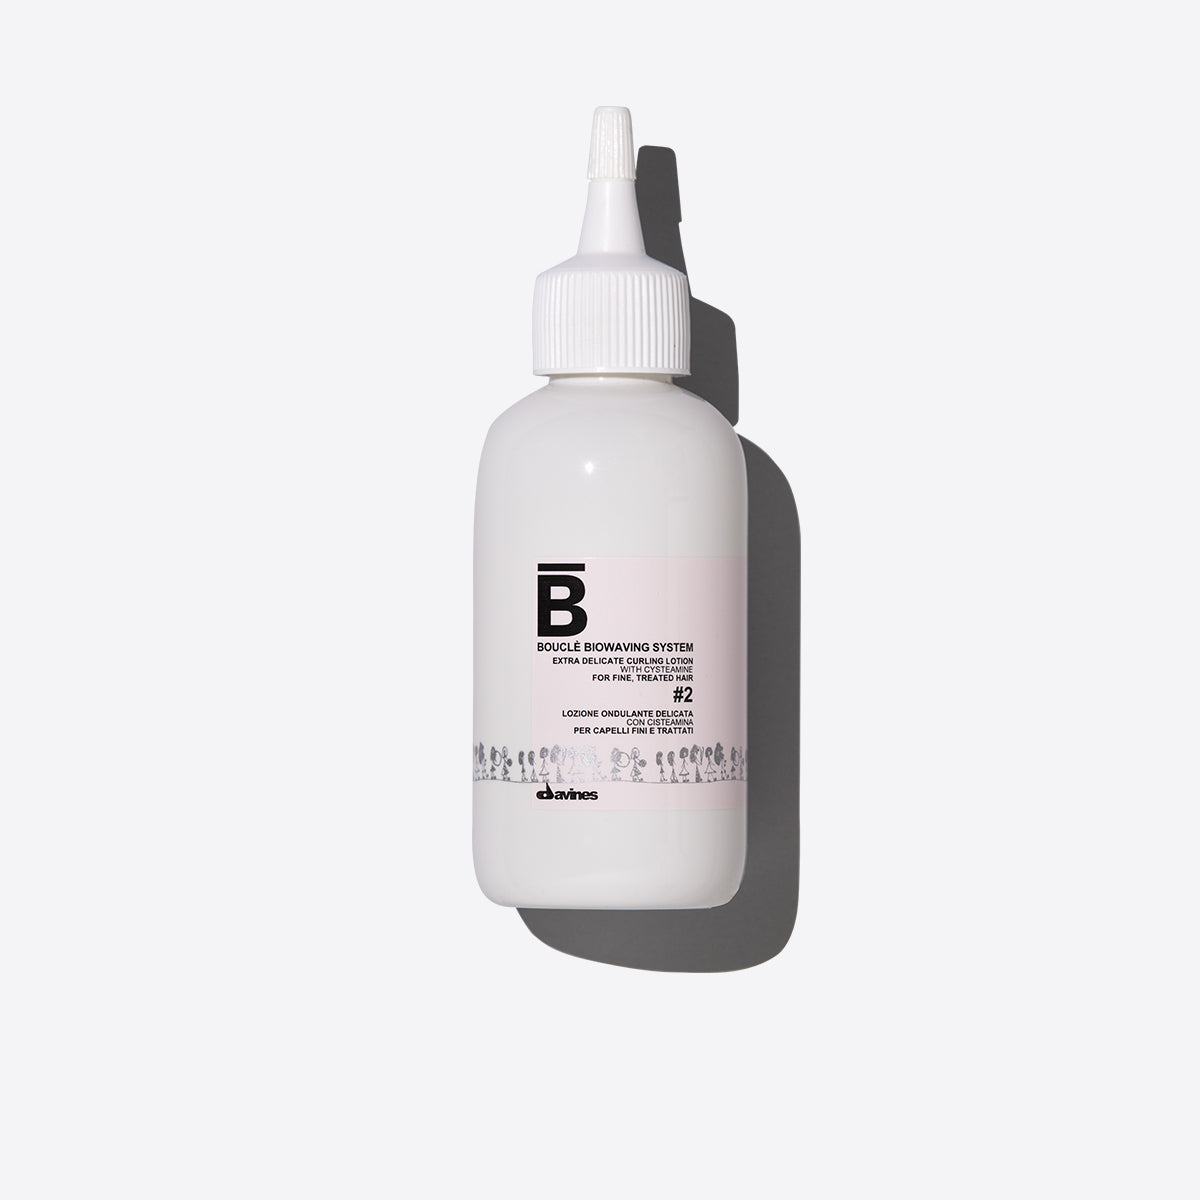 Extra Delicate Curling Lotion 2 1  100 ml / 3,38 fl.oz.Davines